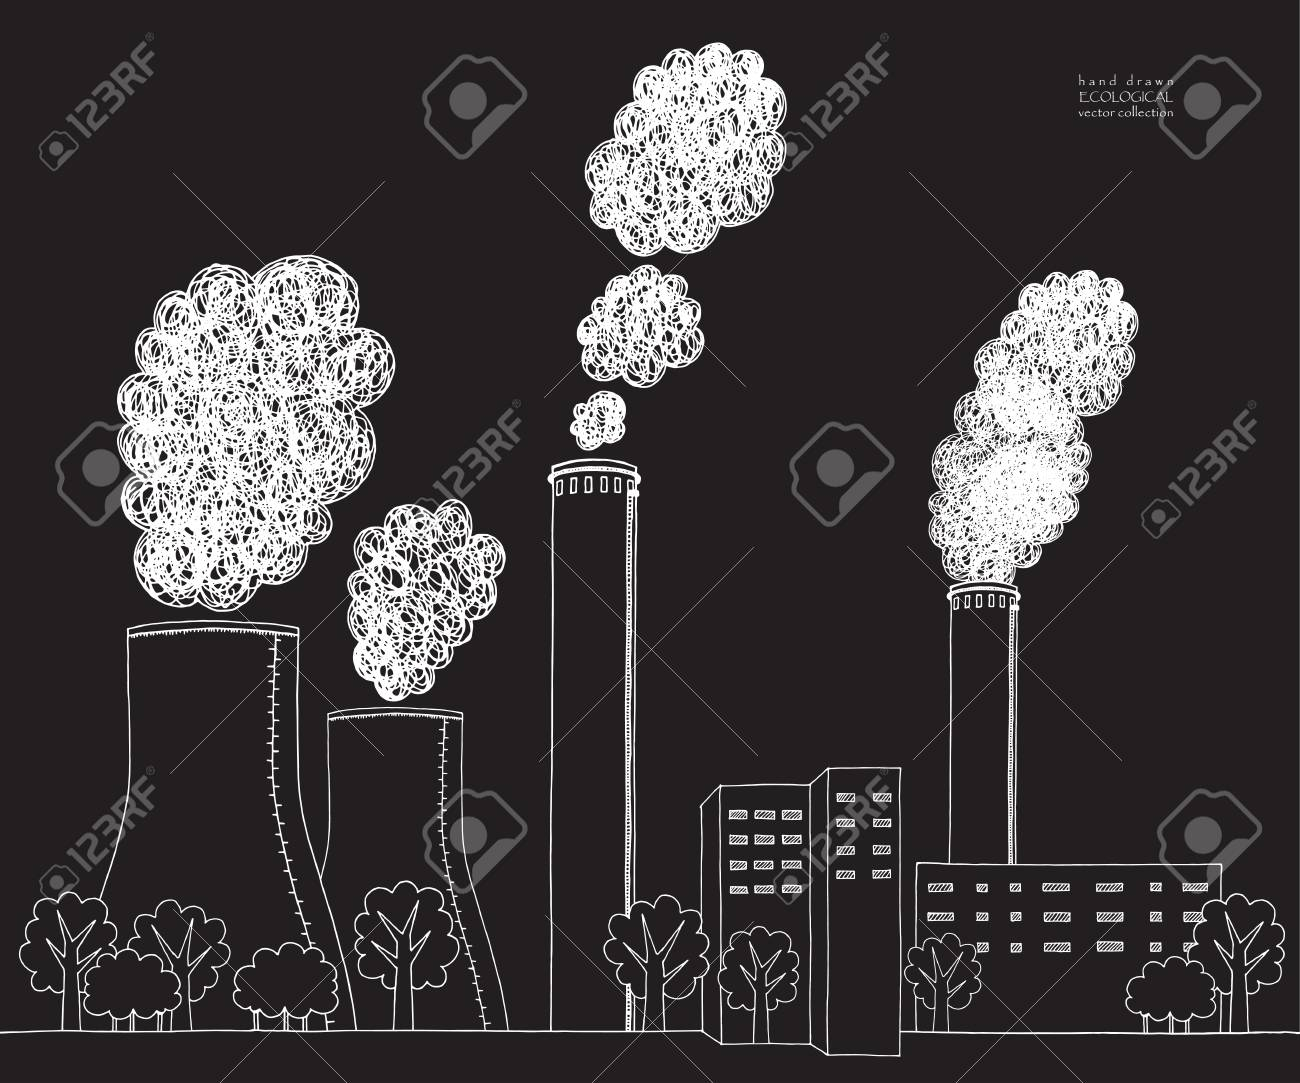 White smokestack on black background illustration of air pollution